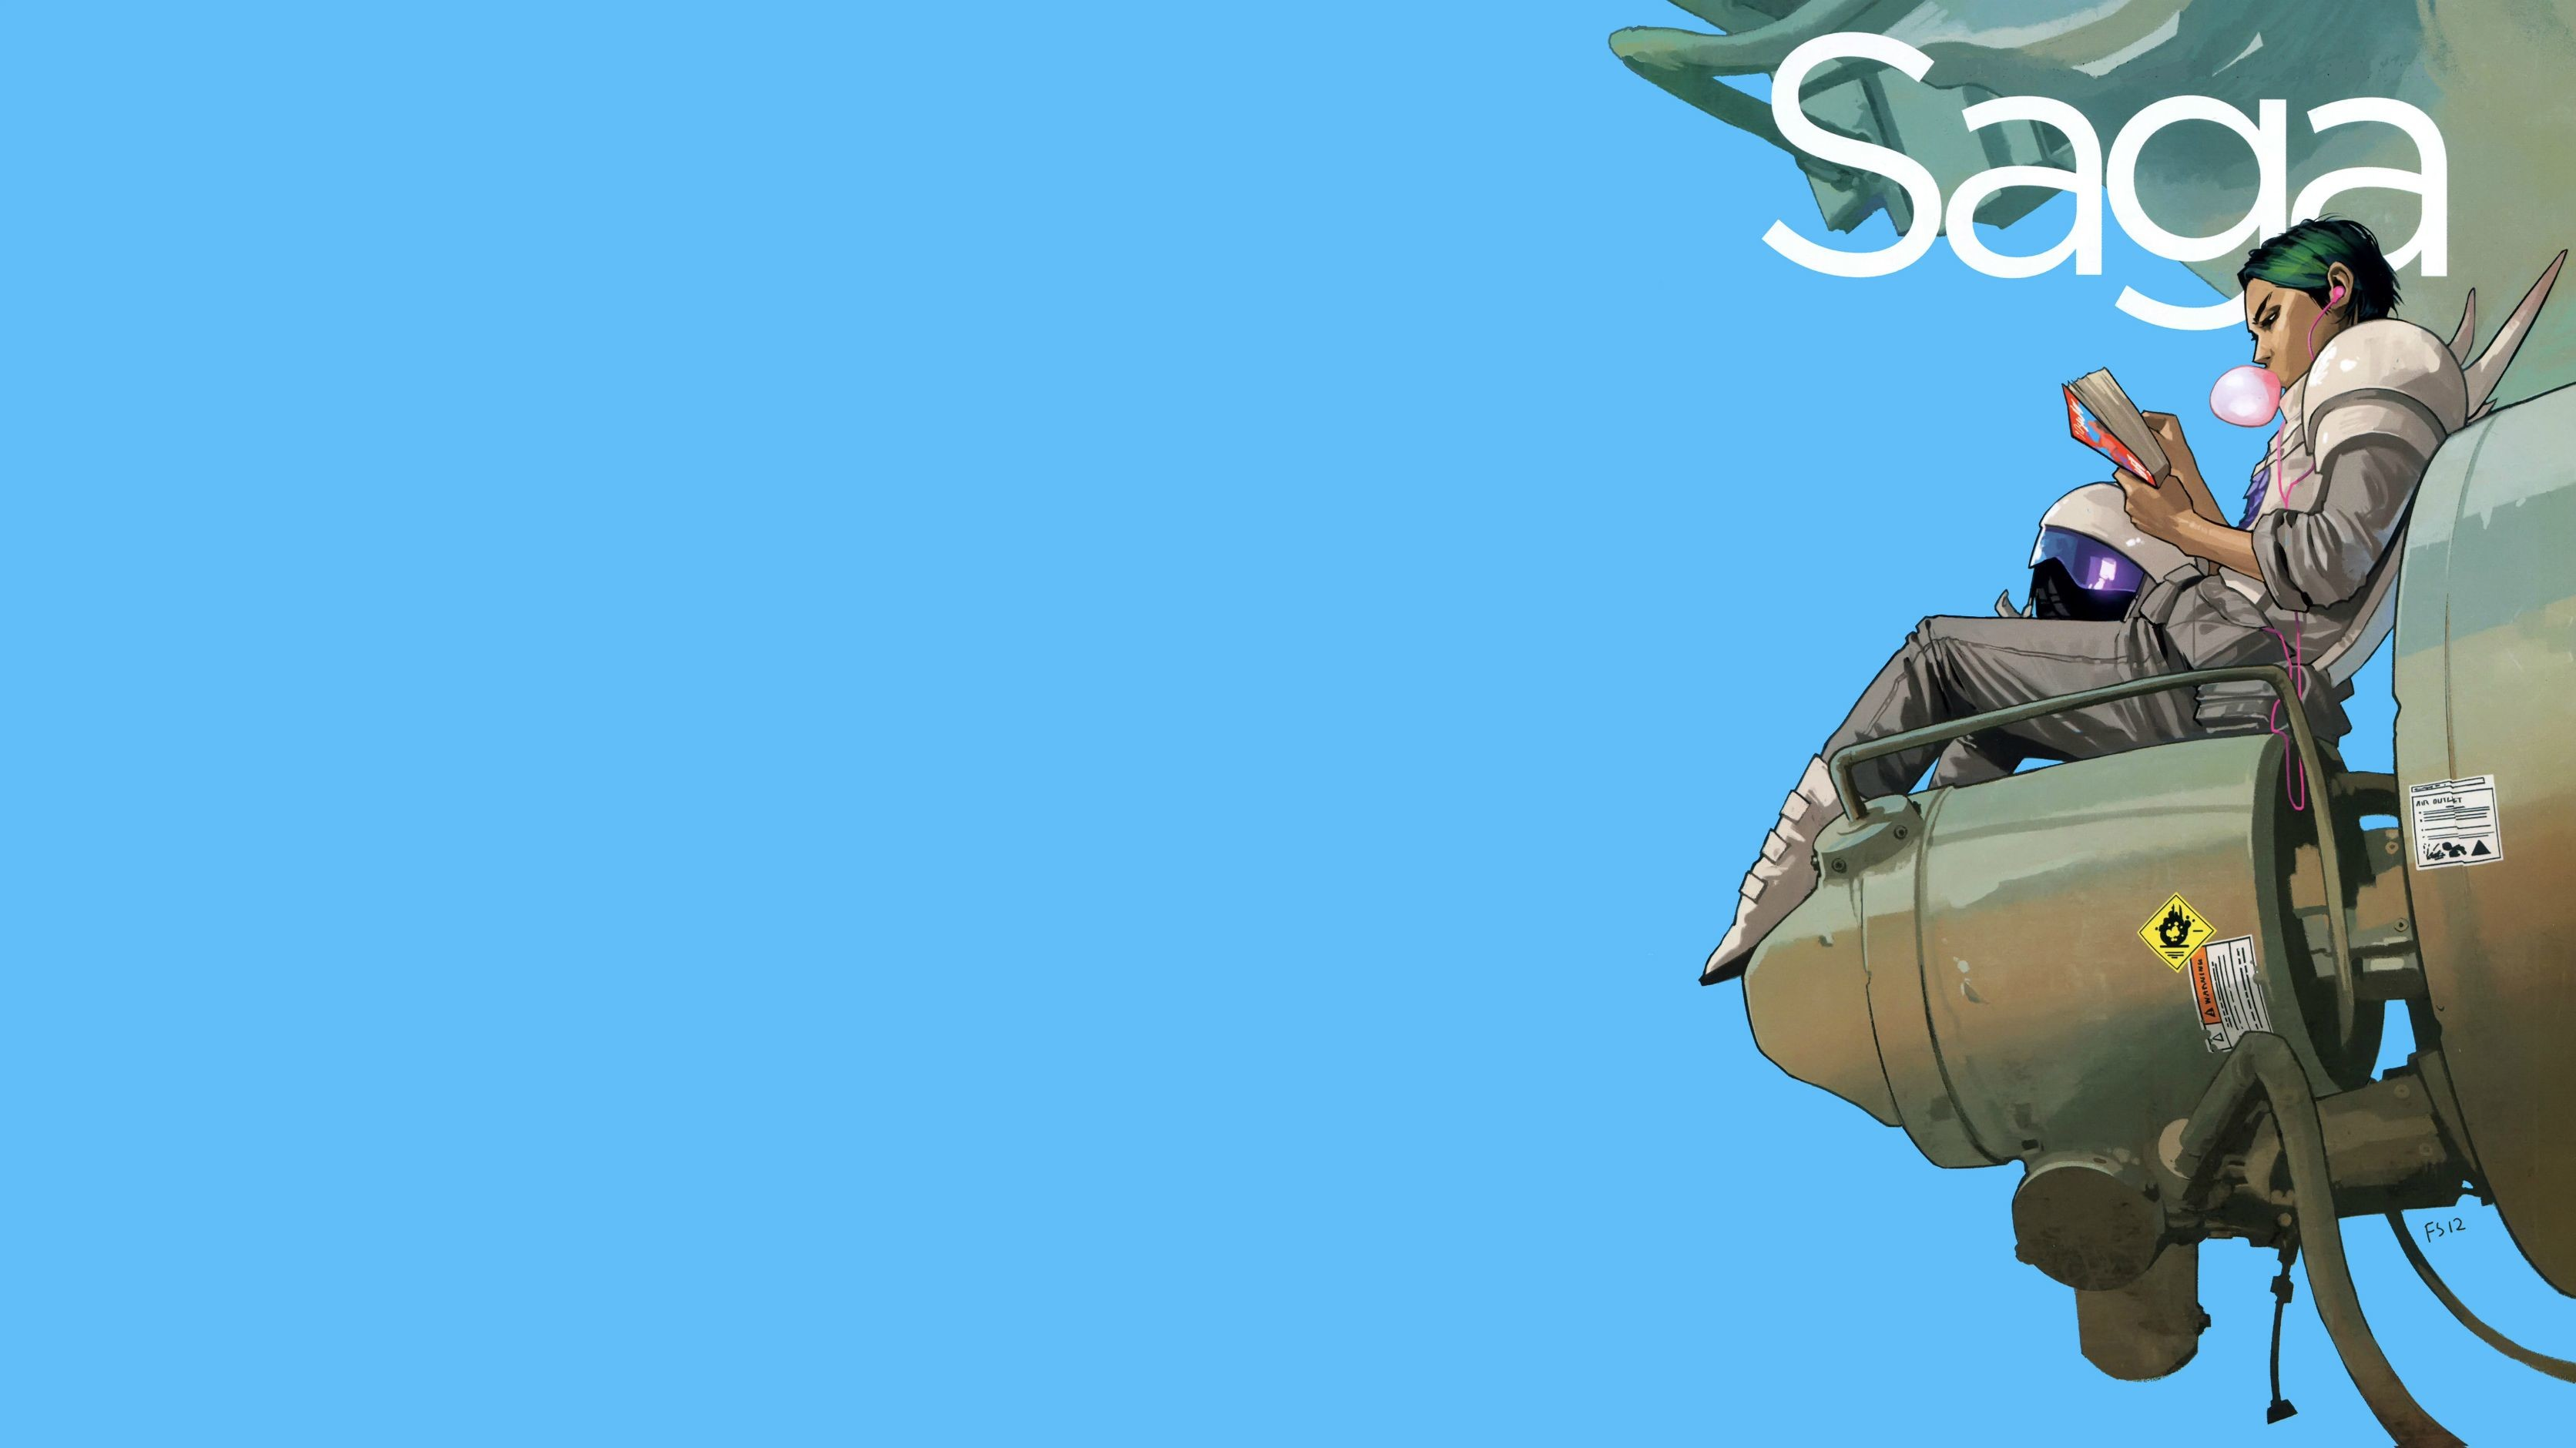 Made a wallpaper out of the cover to Saga #8. Not sure whether or